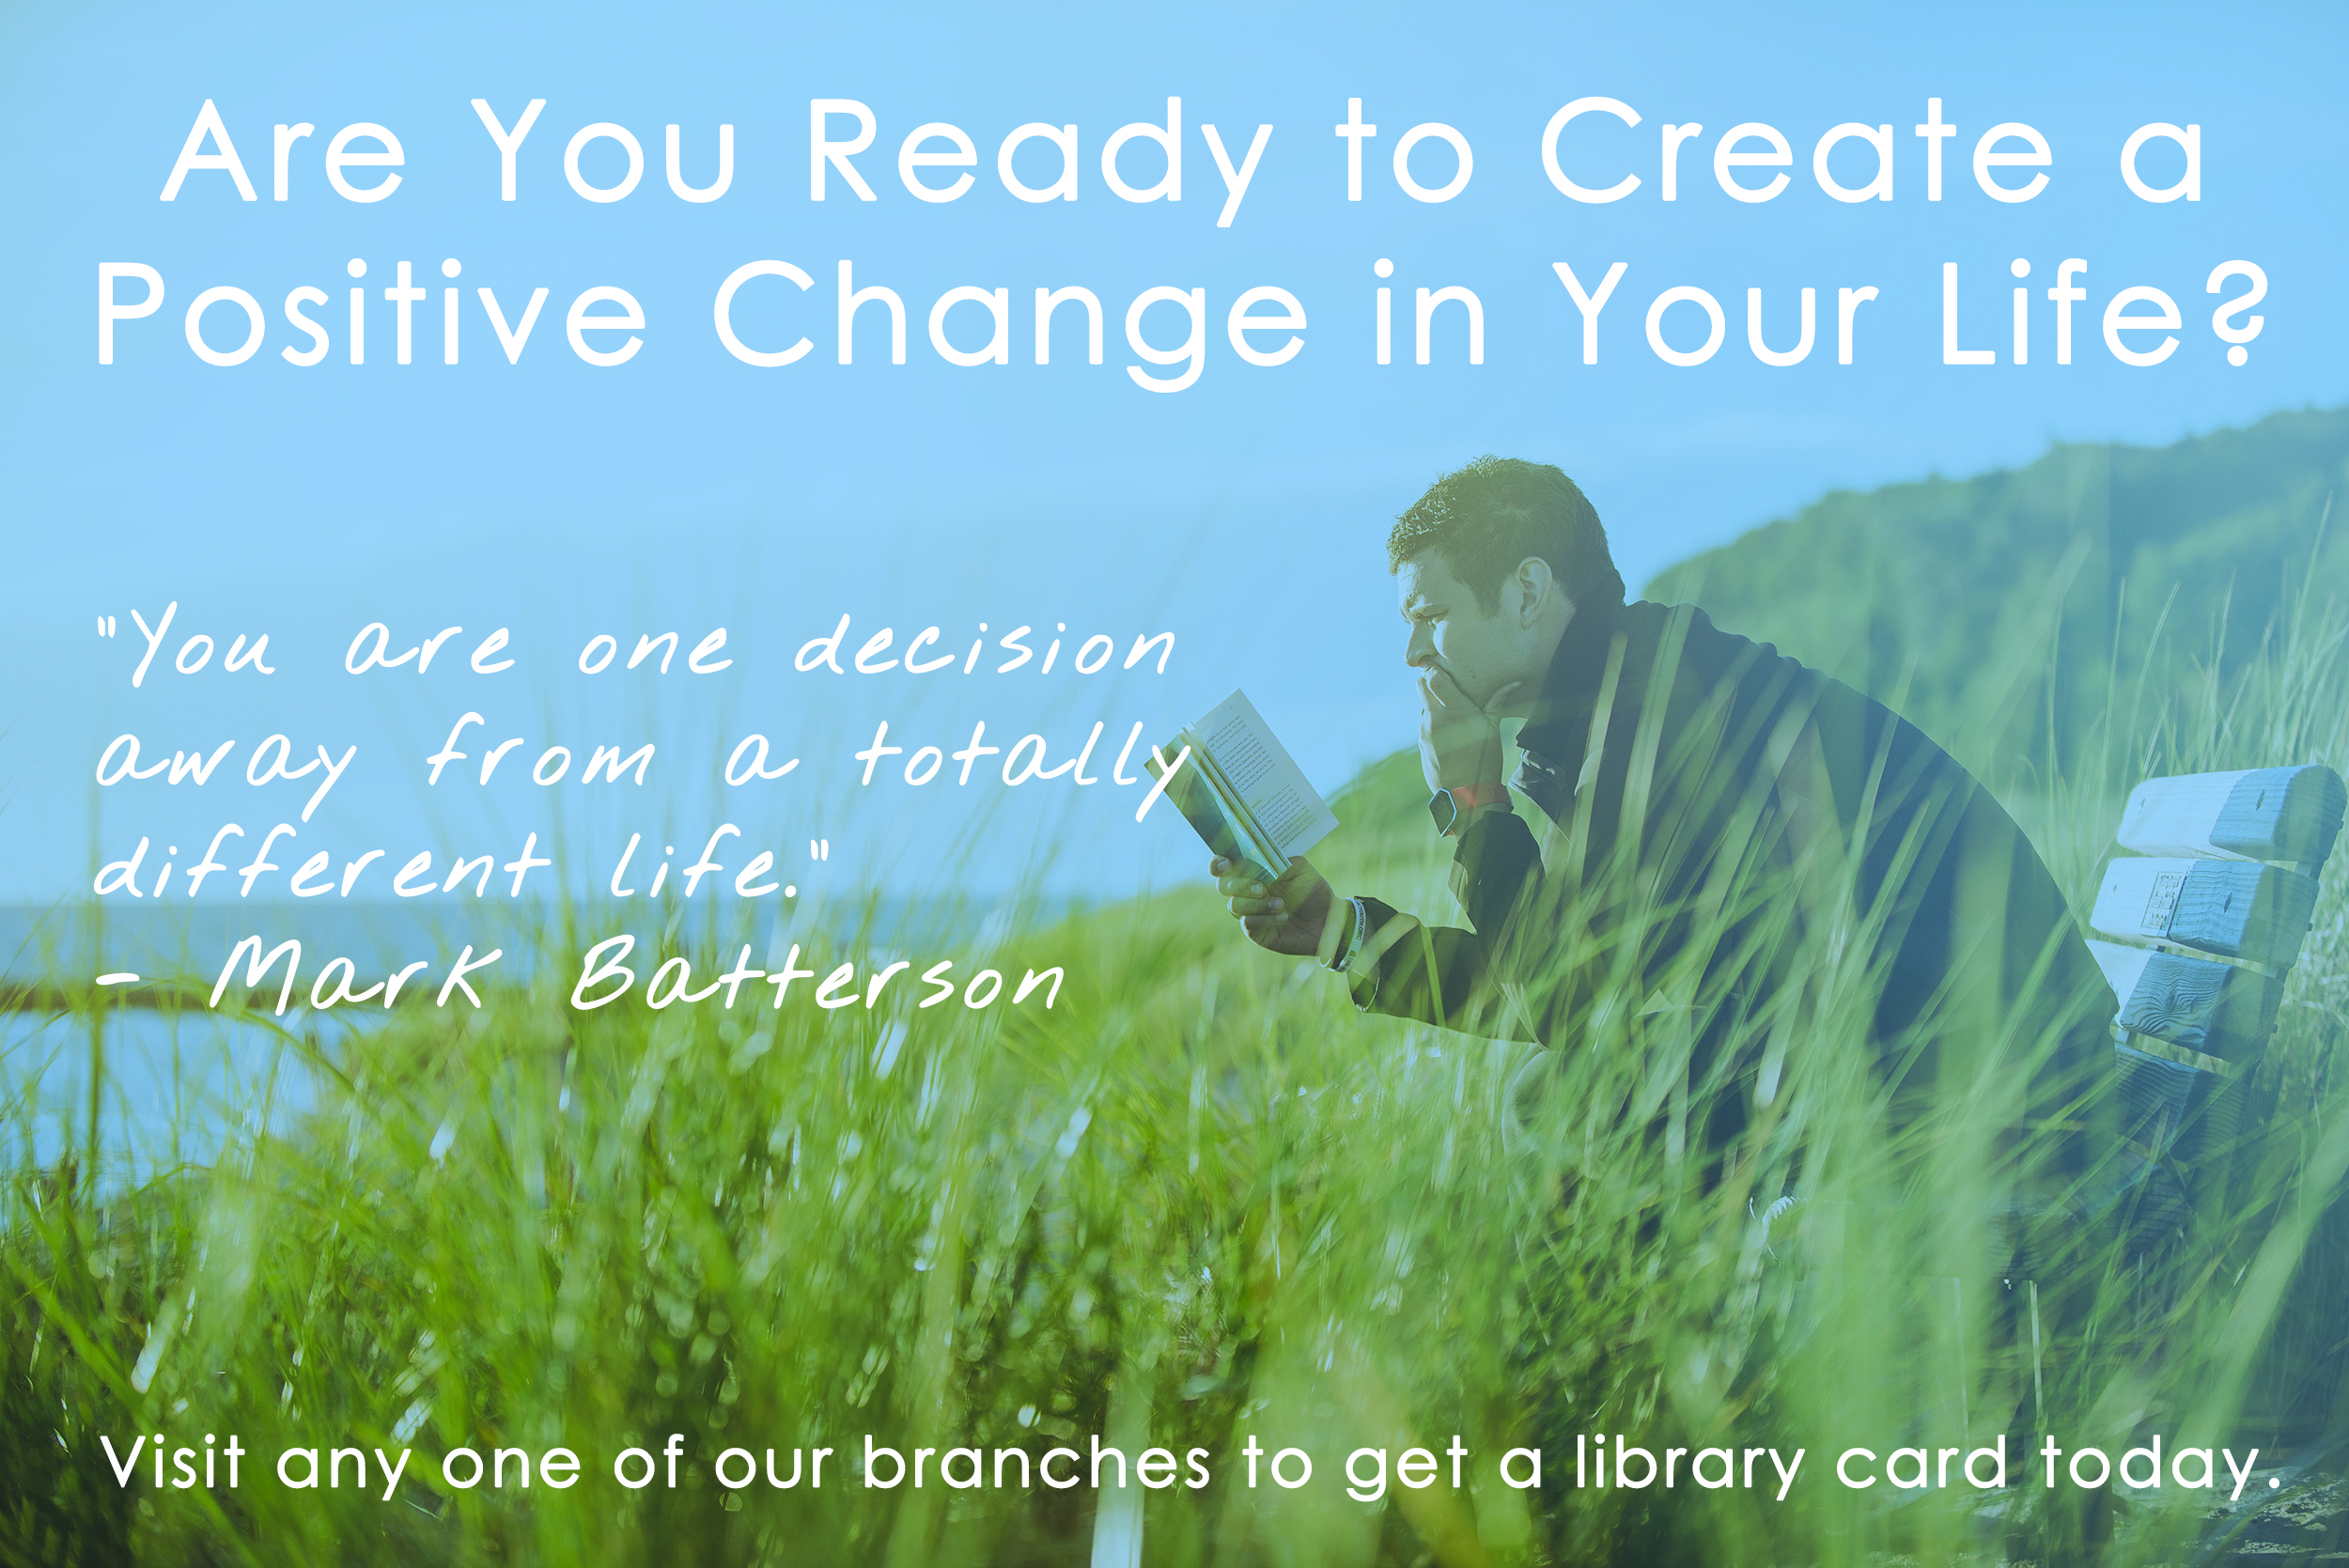 Are you ready to create a positive change in your life?